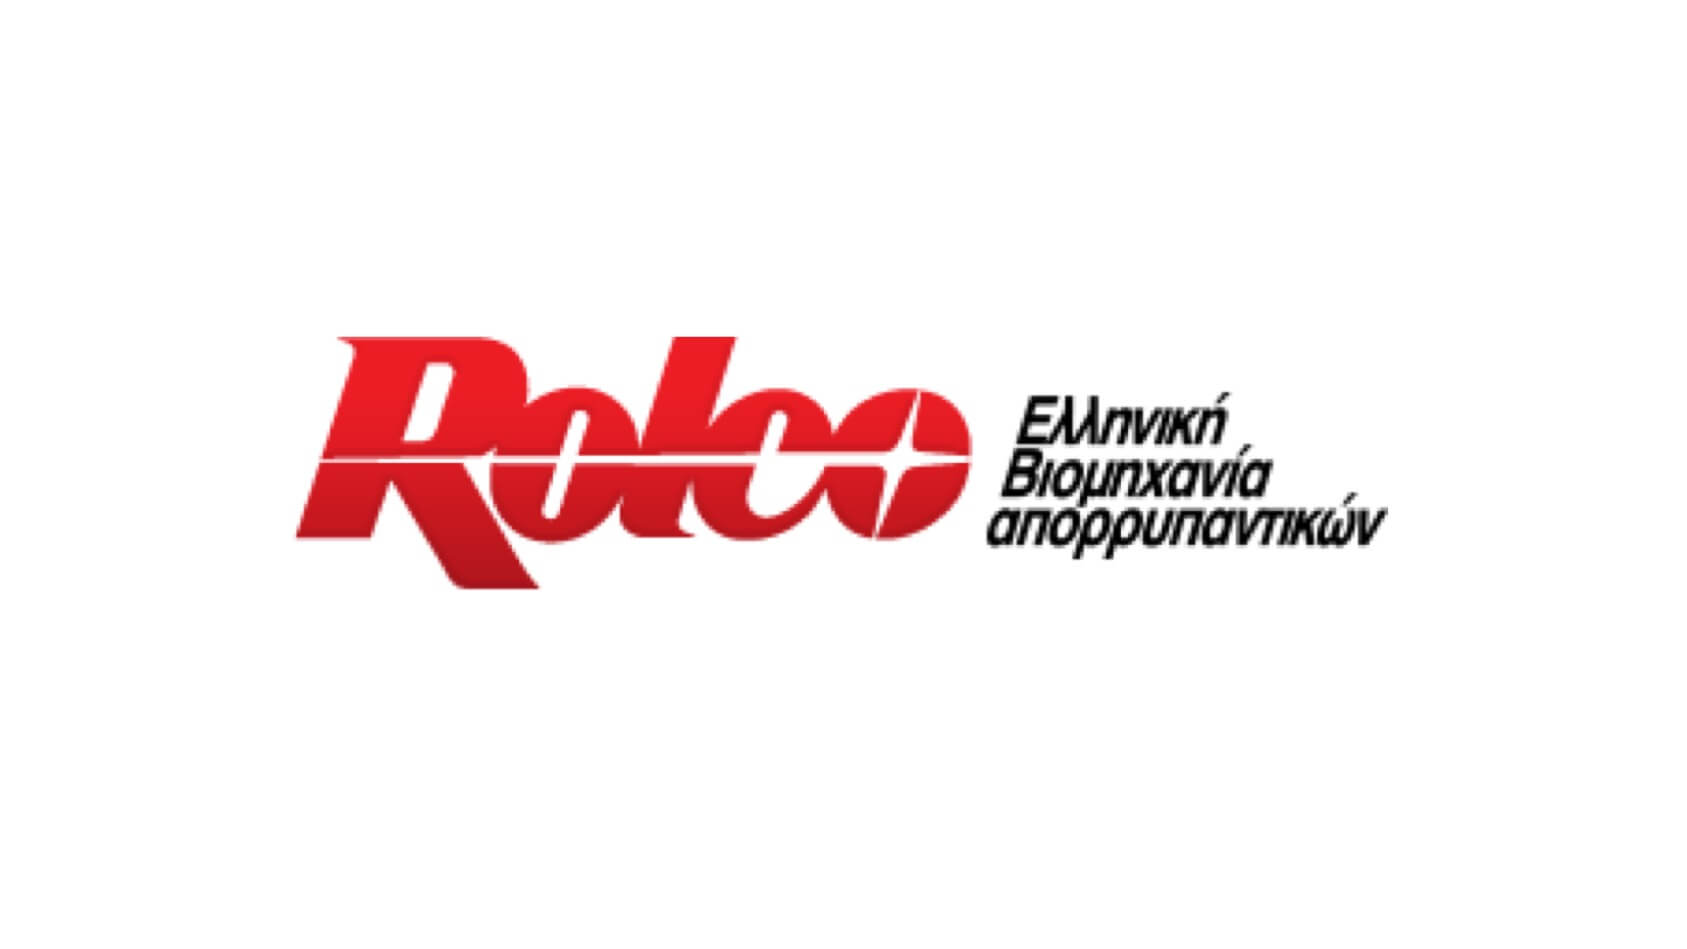 ROLCO-BIANIΛA.E. αναζητά SALES ACCOUNT MANAGER FOR E-COMMERCE AND OMNI CHANNELS